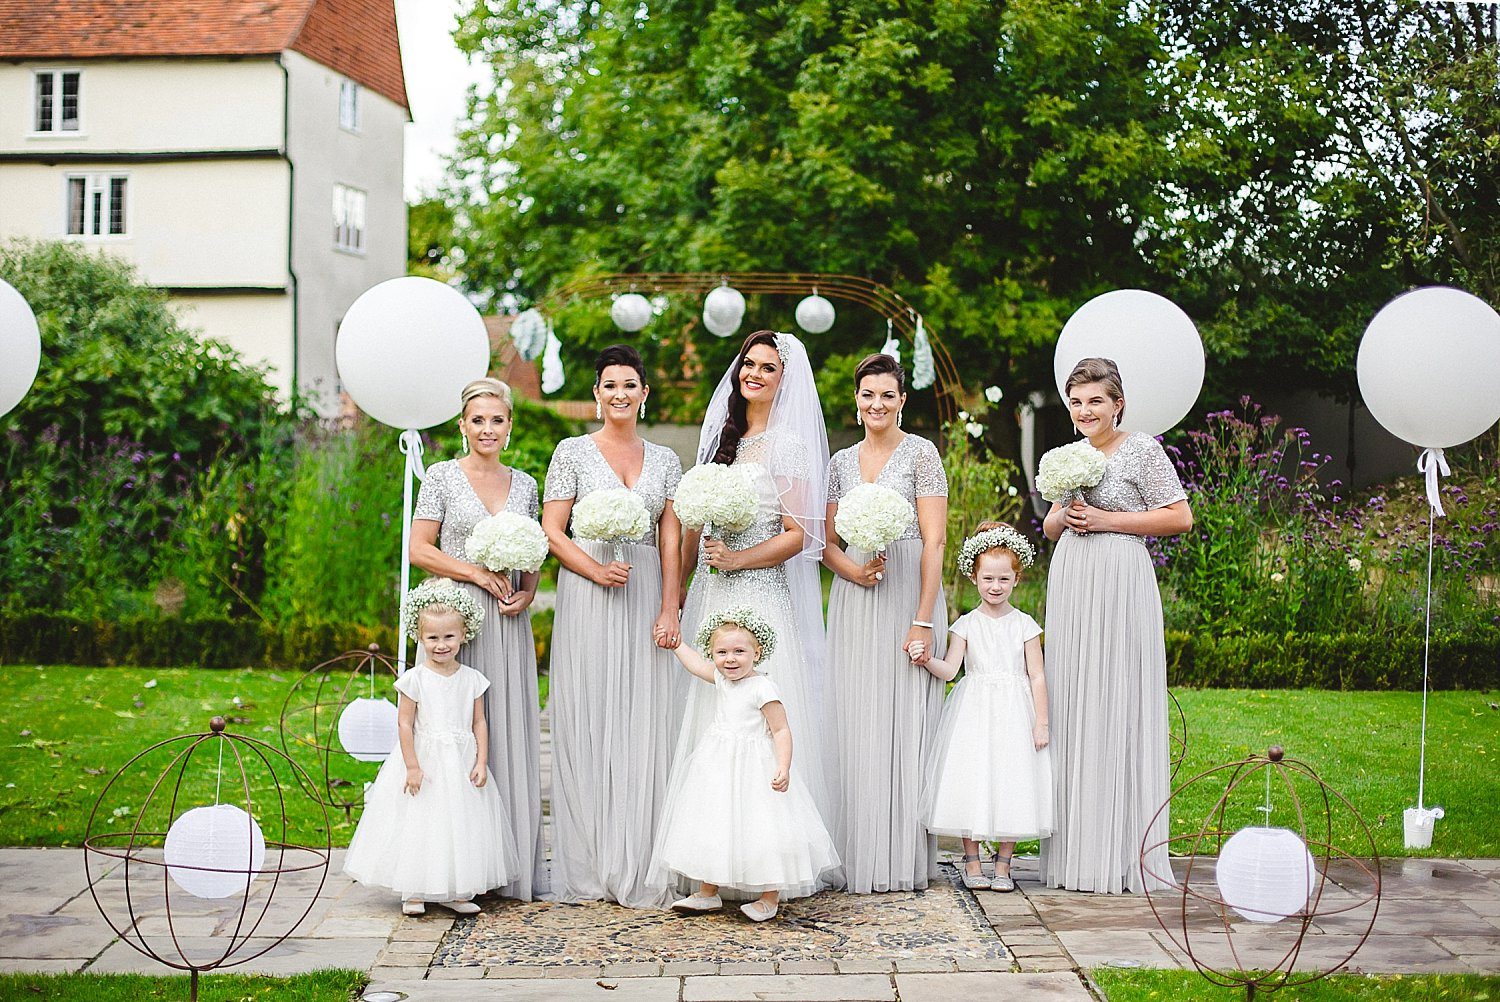 Houchins Wedding Photographer - Bridal Party in the Gardens